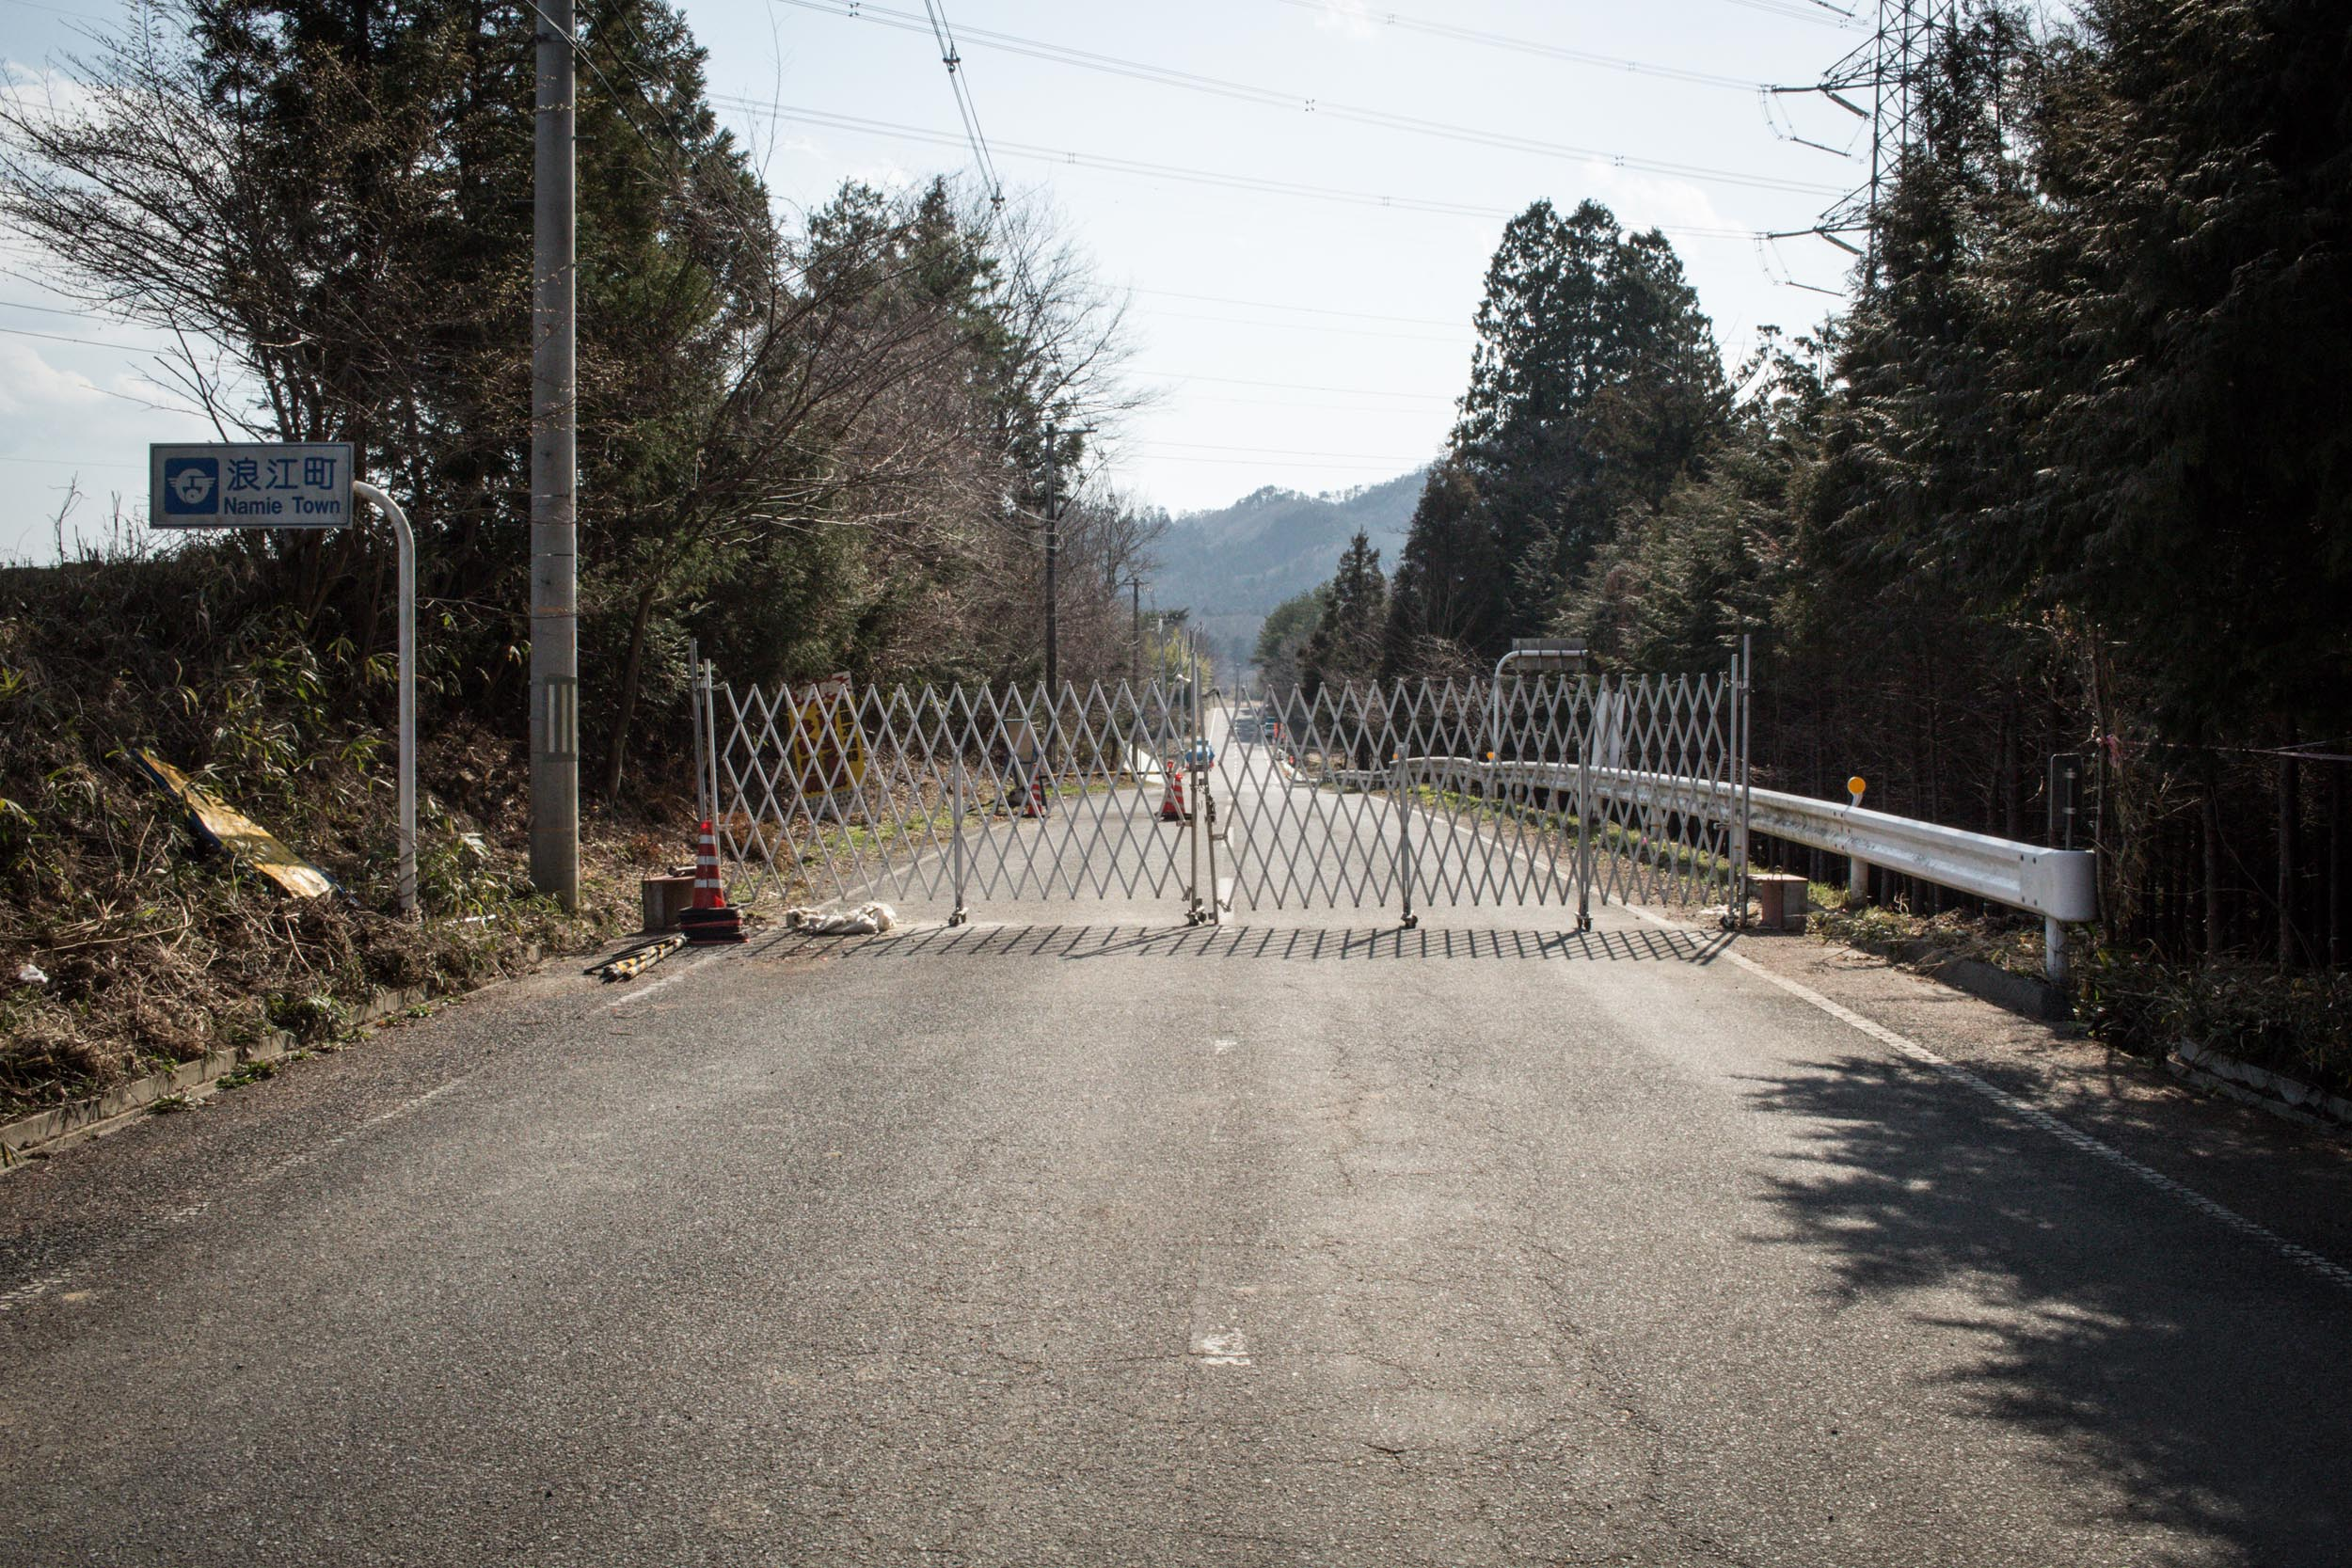 Roads blocked at the entrance of Namie town. Namie had a population of 21,000 at the time of the nuclear accident and falls within the range of 4 to 20 miles exclusion radius around the damag